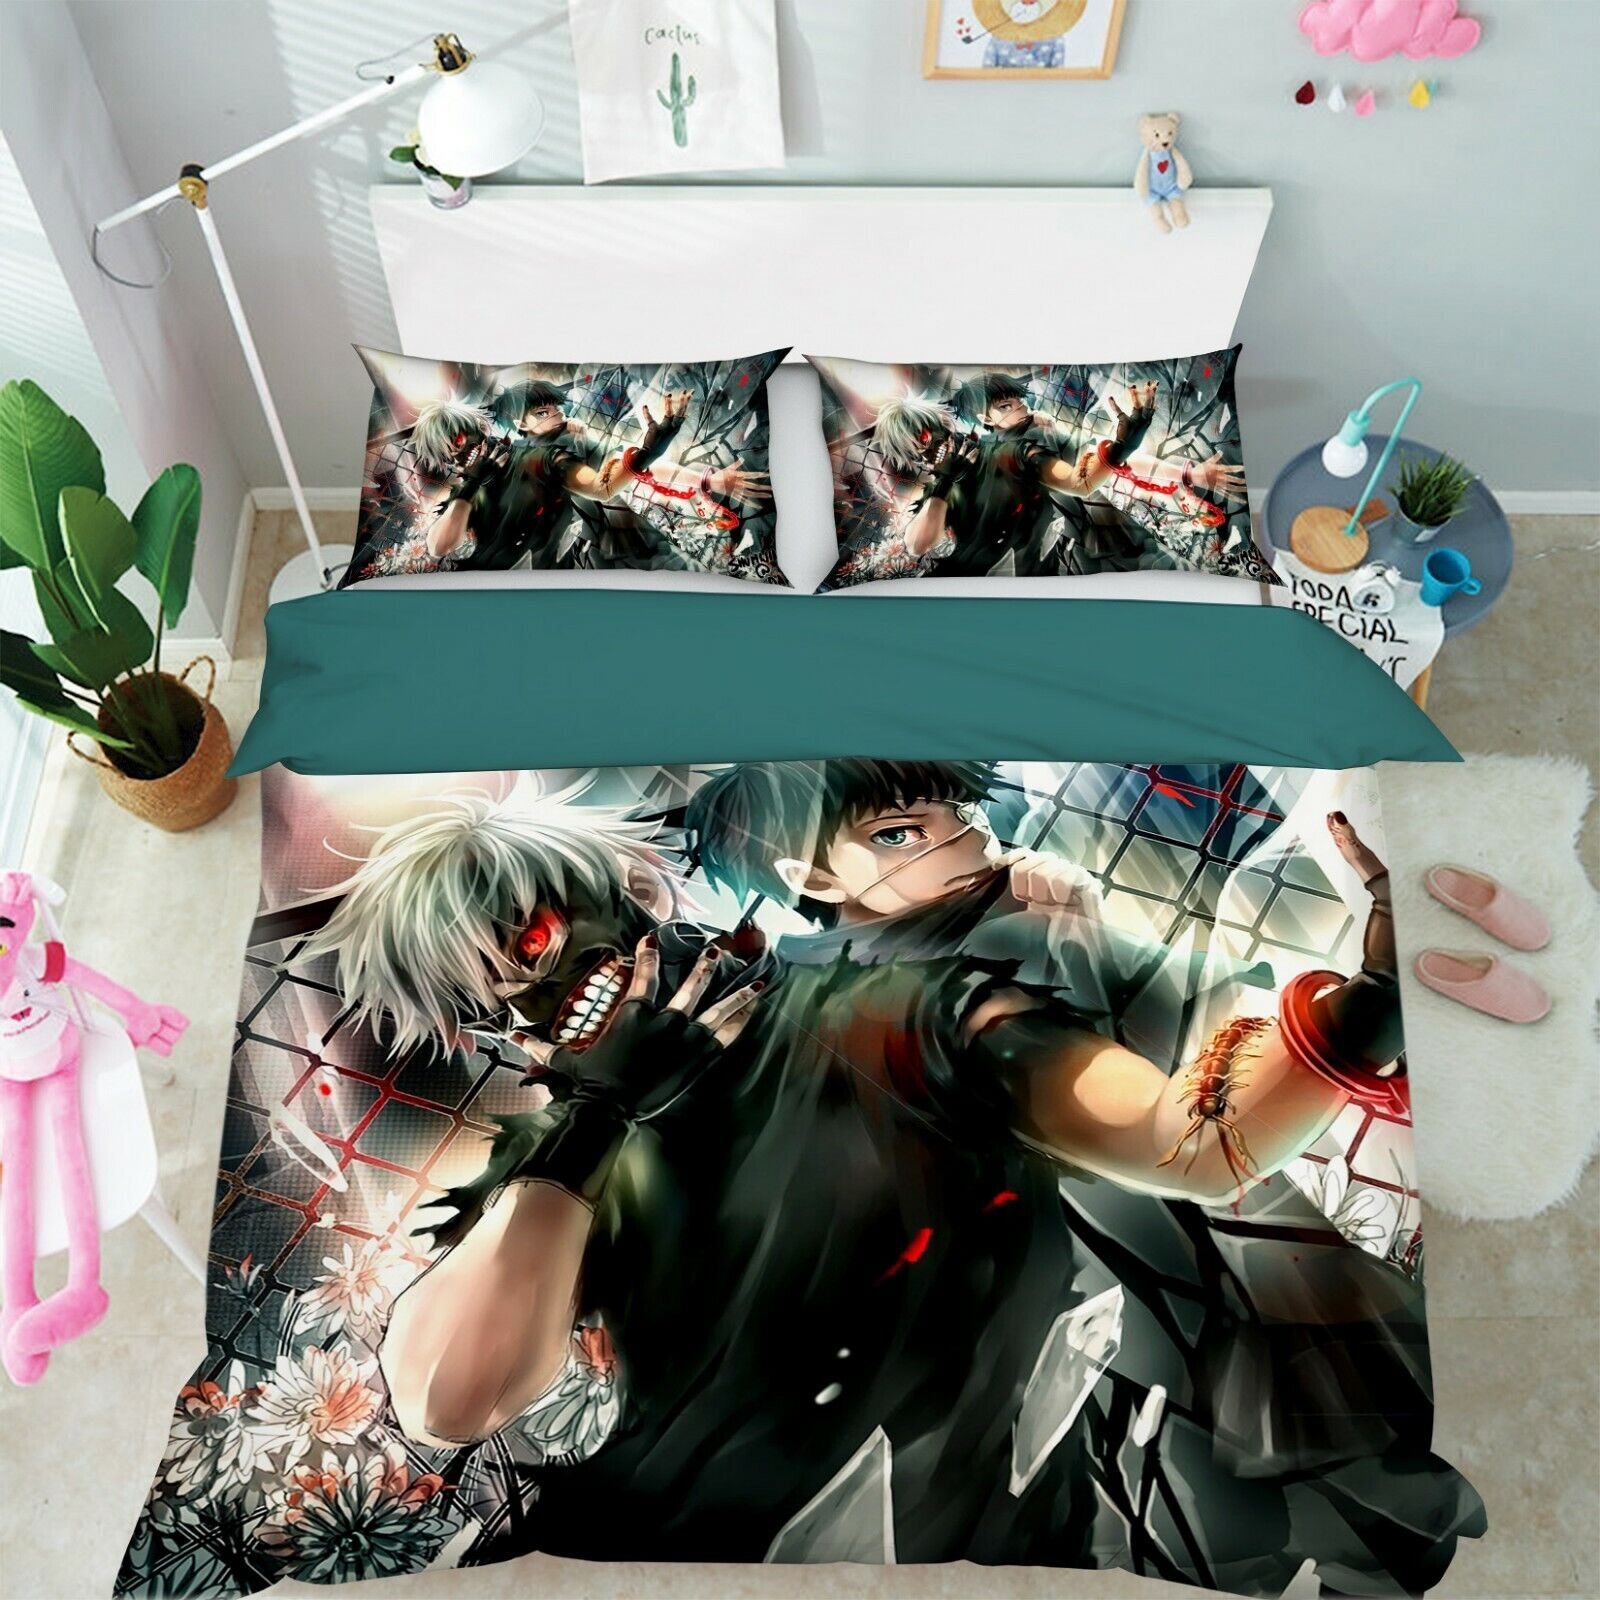 3D Tokyo Ghoul 786 Japan Anime Bed Pillowcases Quilt Duvet Cover Single AU